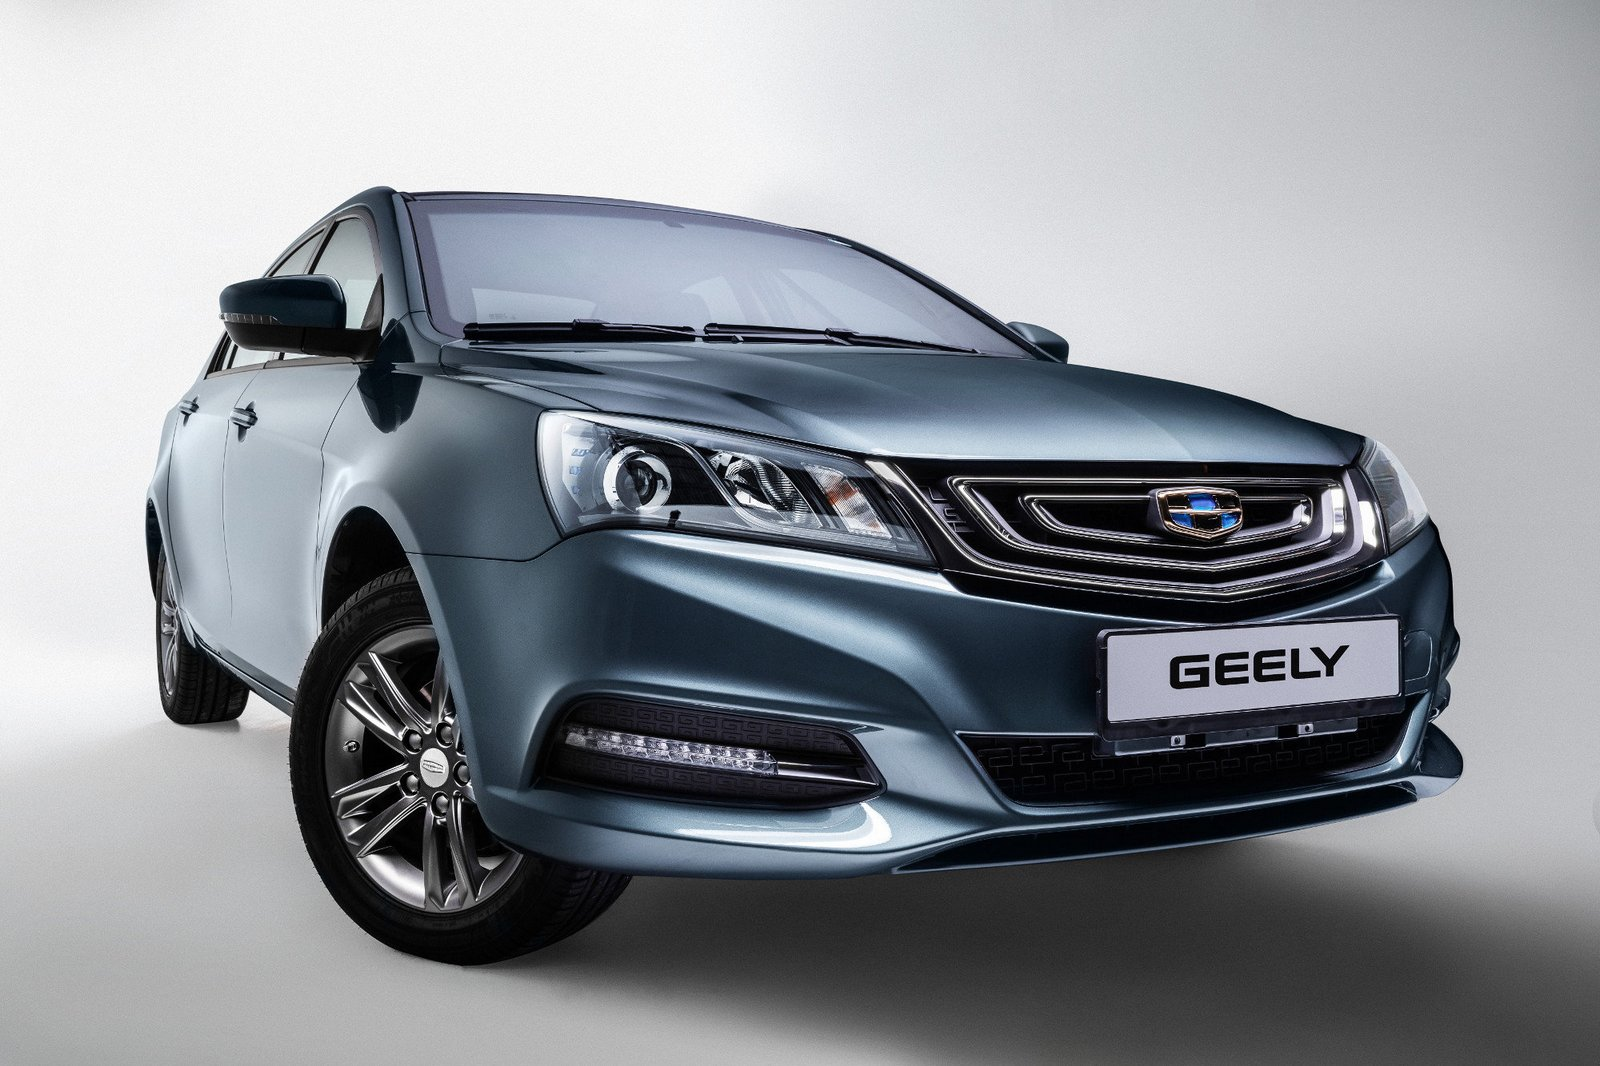 Geely cars - convenience and comfort at a reasonable price